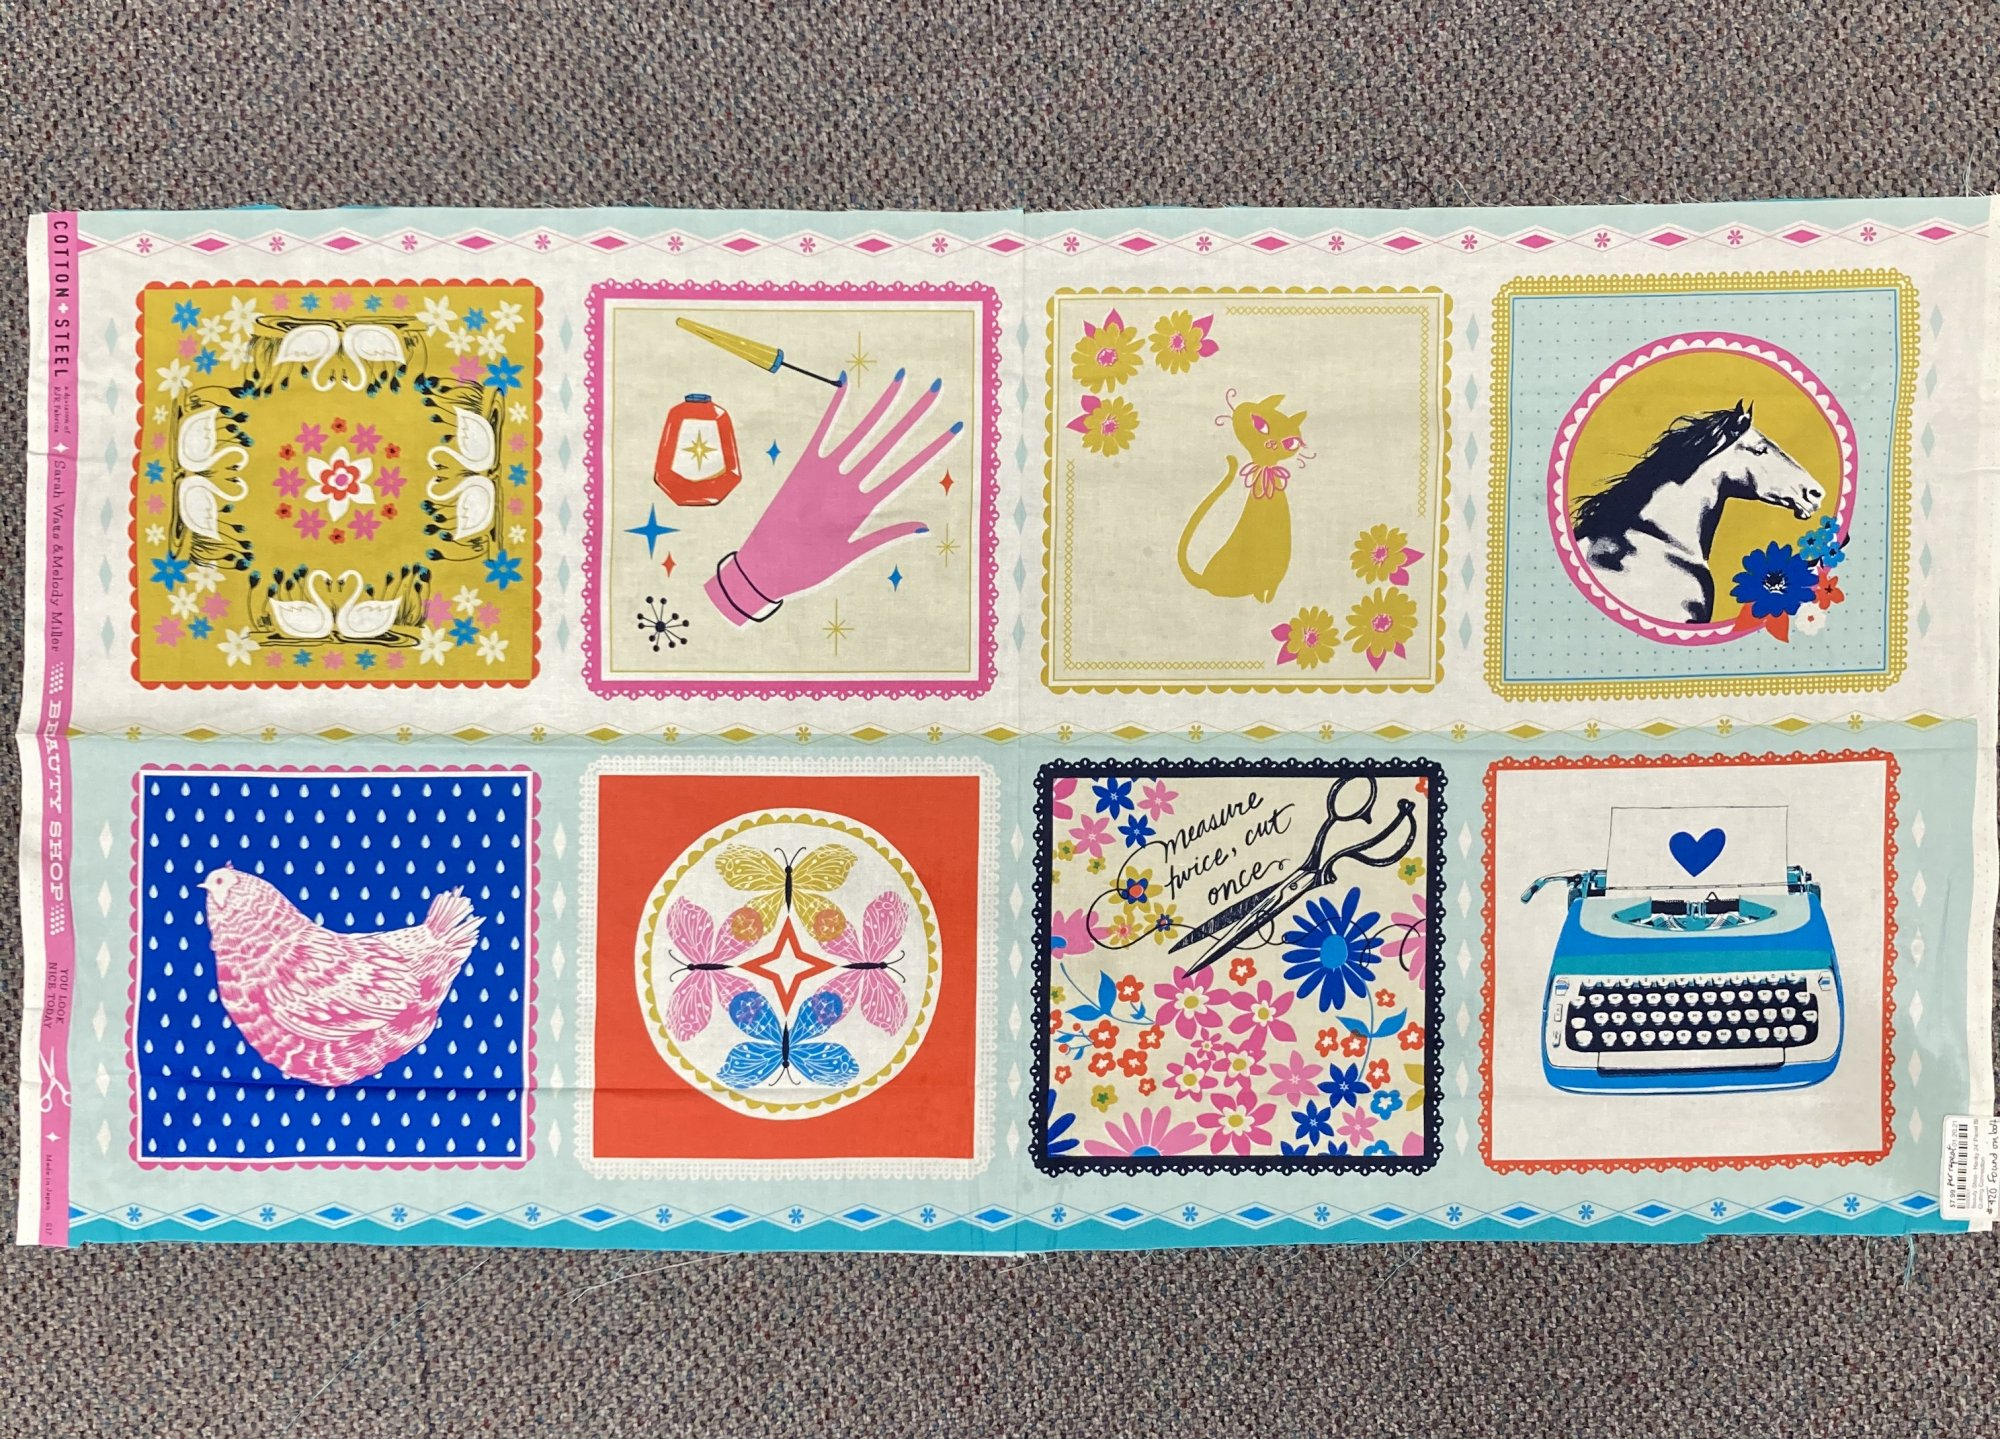 Beauty Shop - Hanky 24 Panel Blue - #C6000-001 - By Sarah Watts & Melody Miller (#420 on bolt)